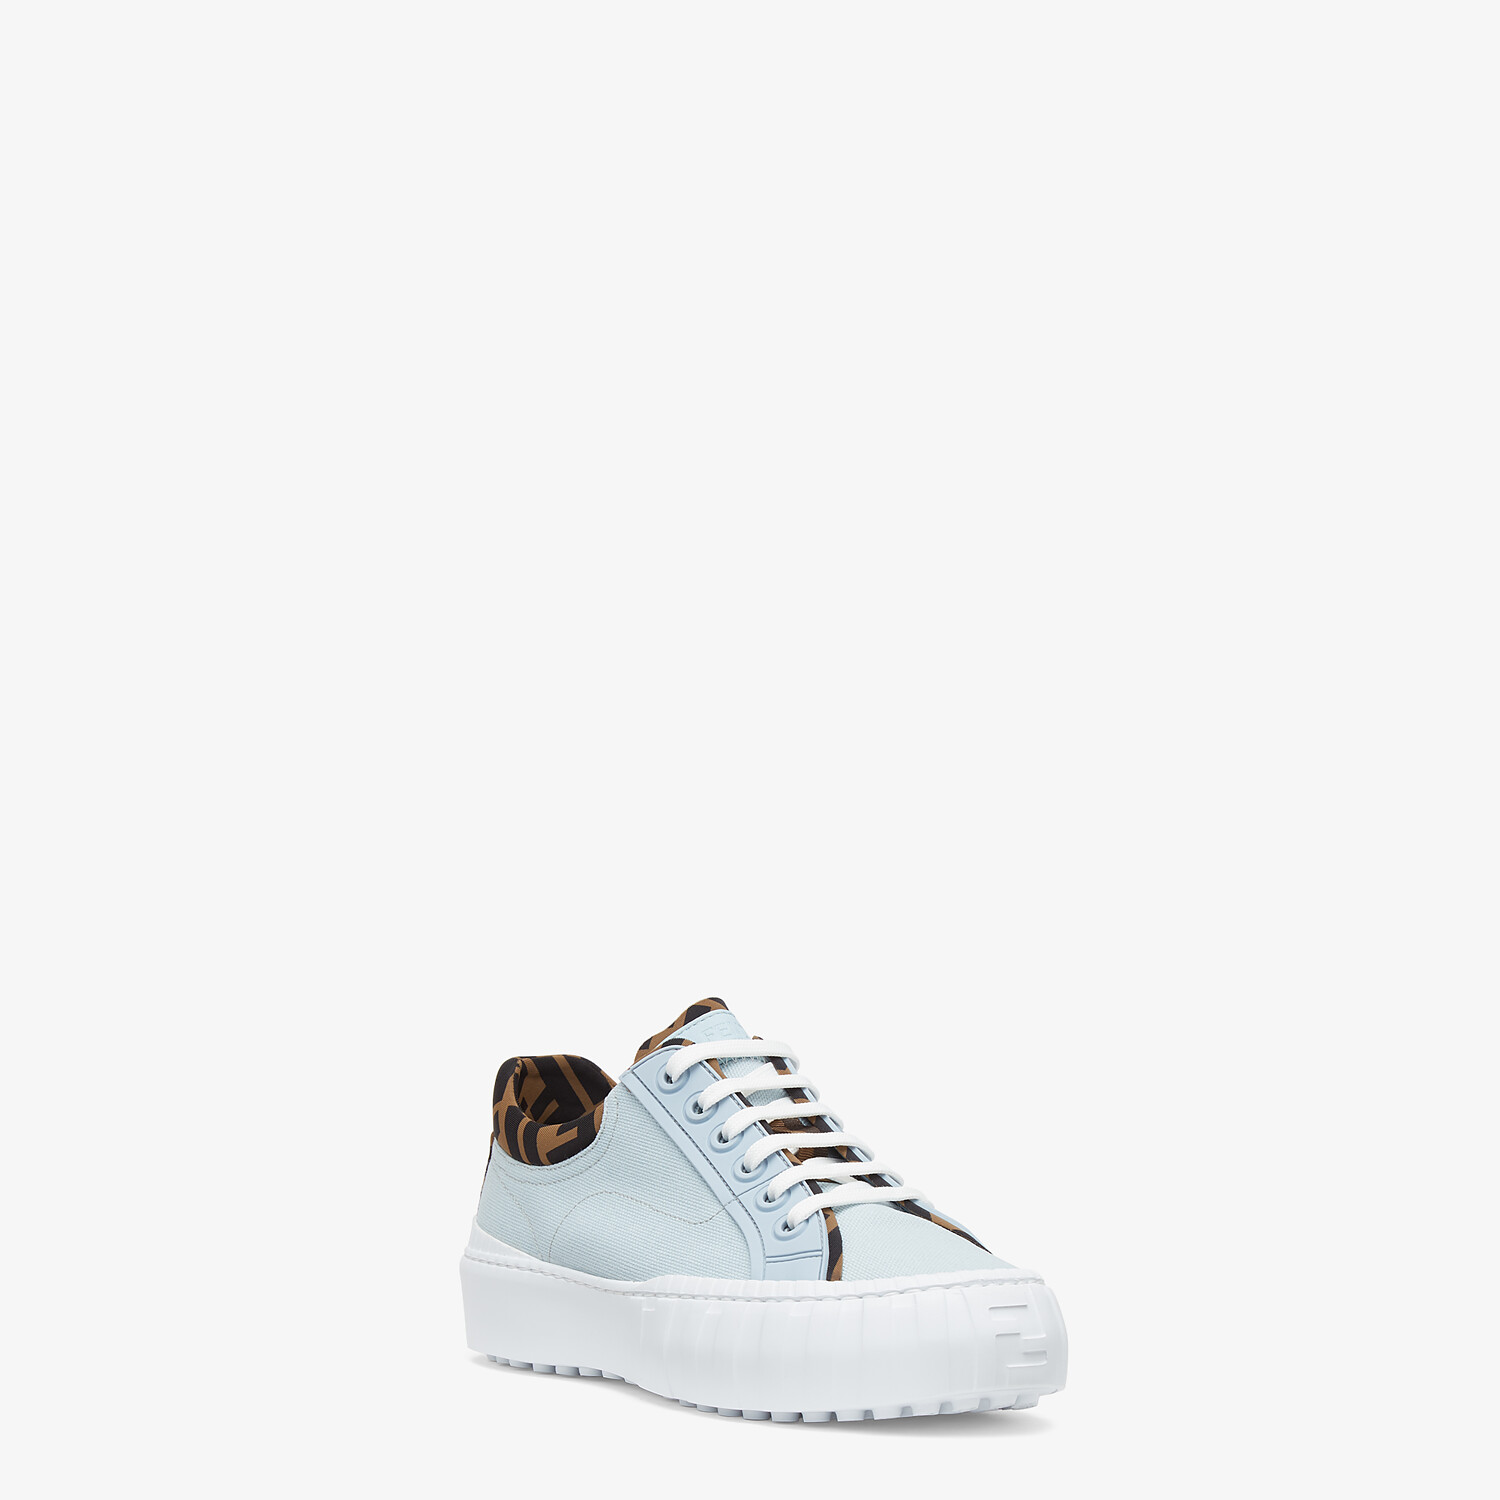 FENDI FENDI FORCE - Light blue canvas and TPU low-tops - view 2 detail